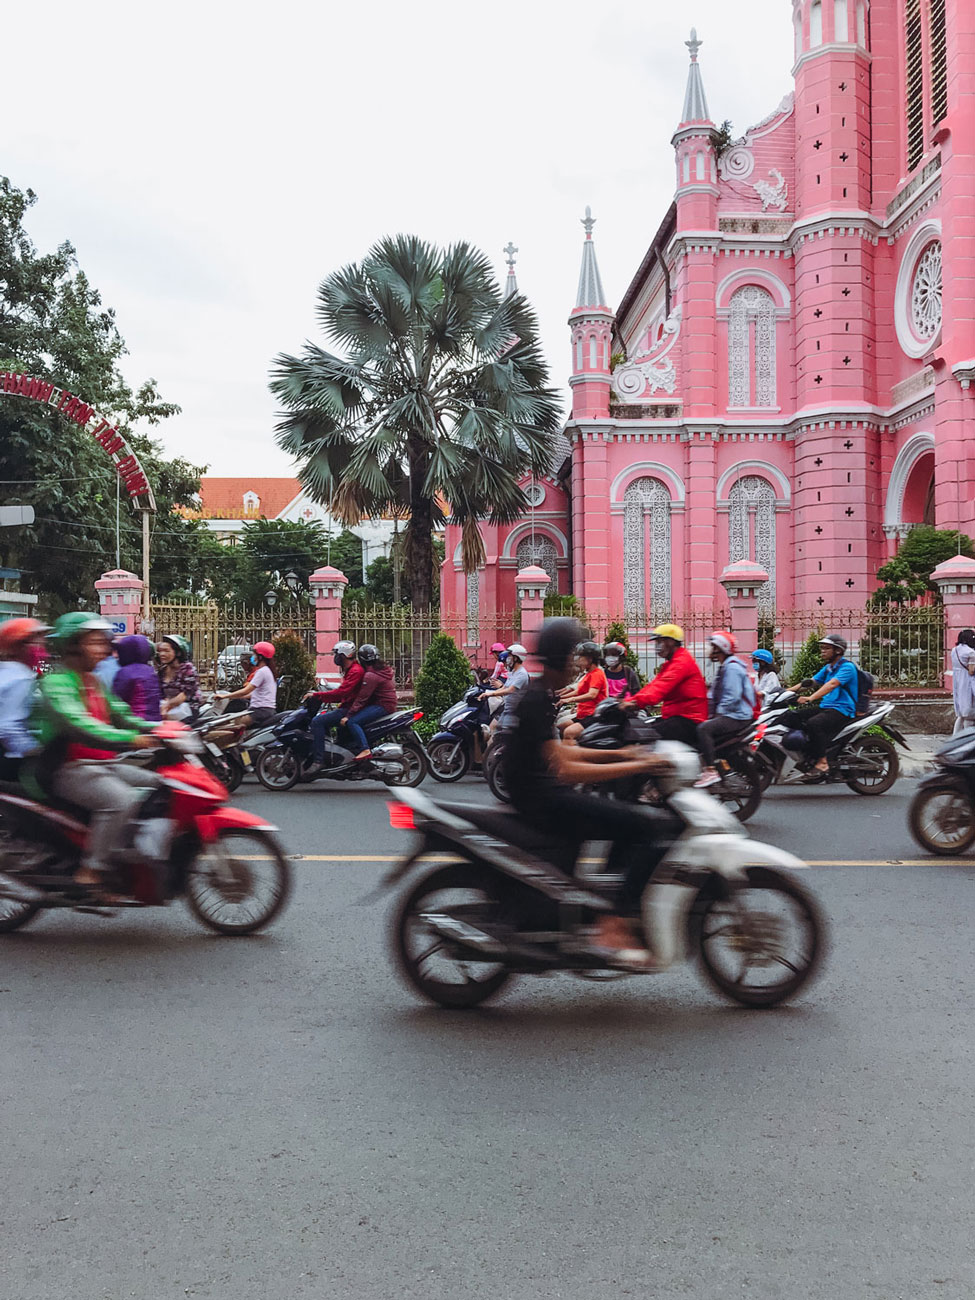 The hustle and bustle of the streets of Ho Chi Minh City.